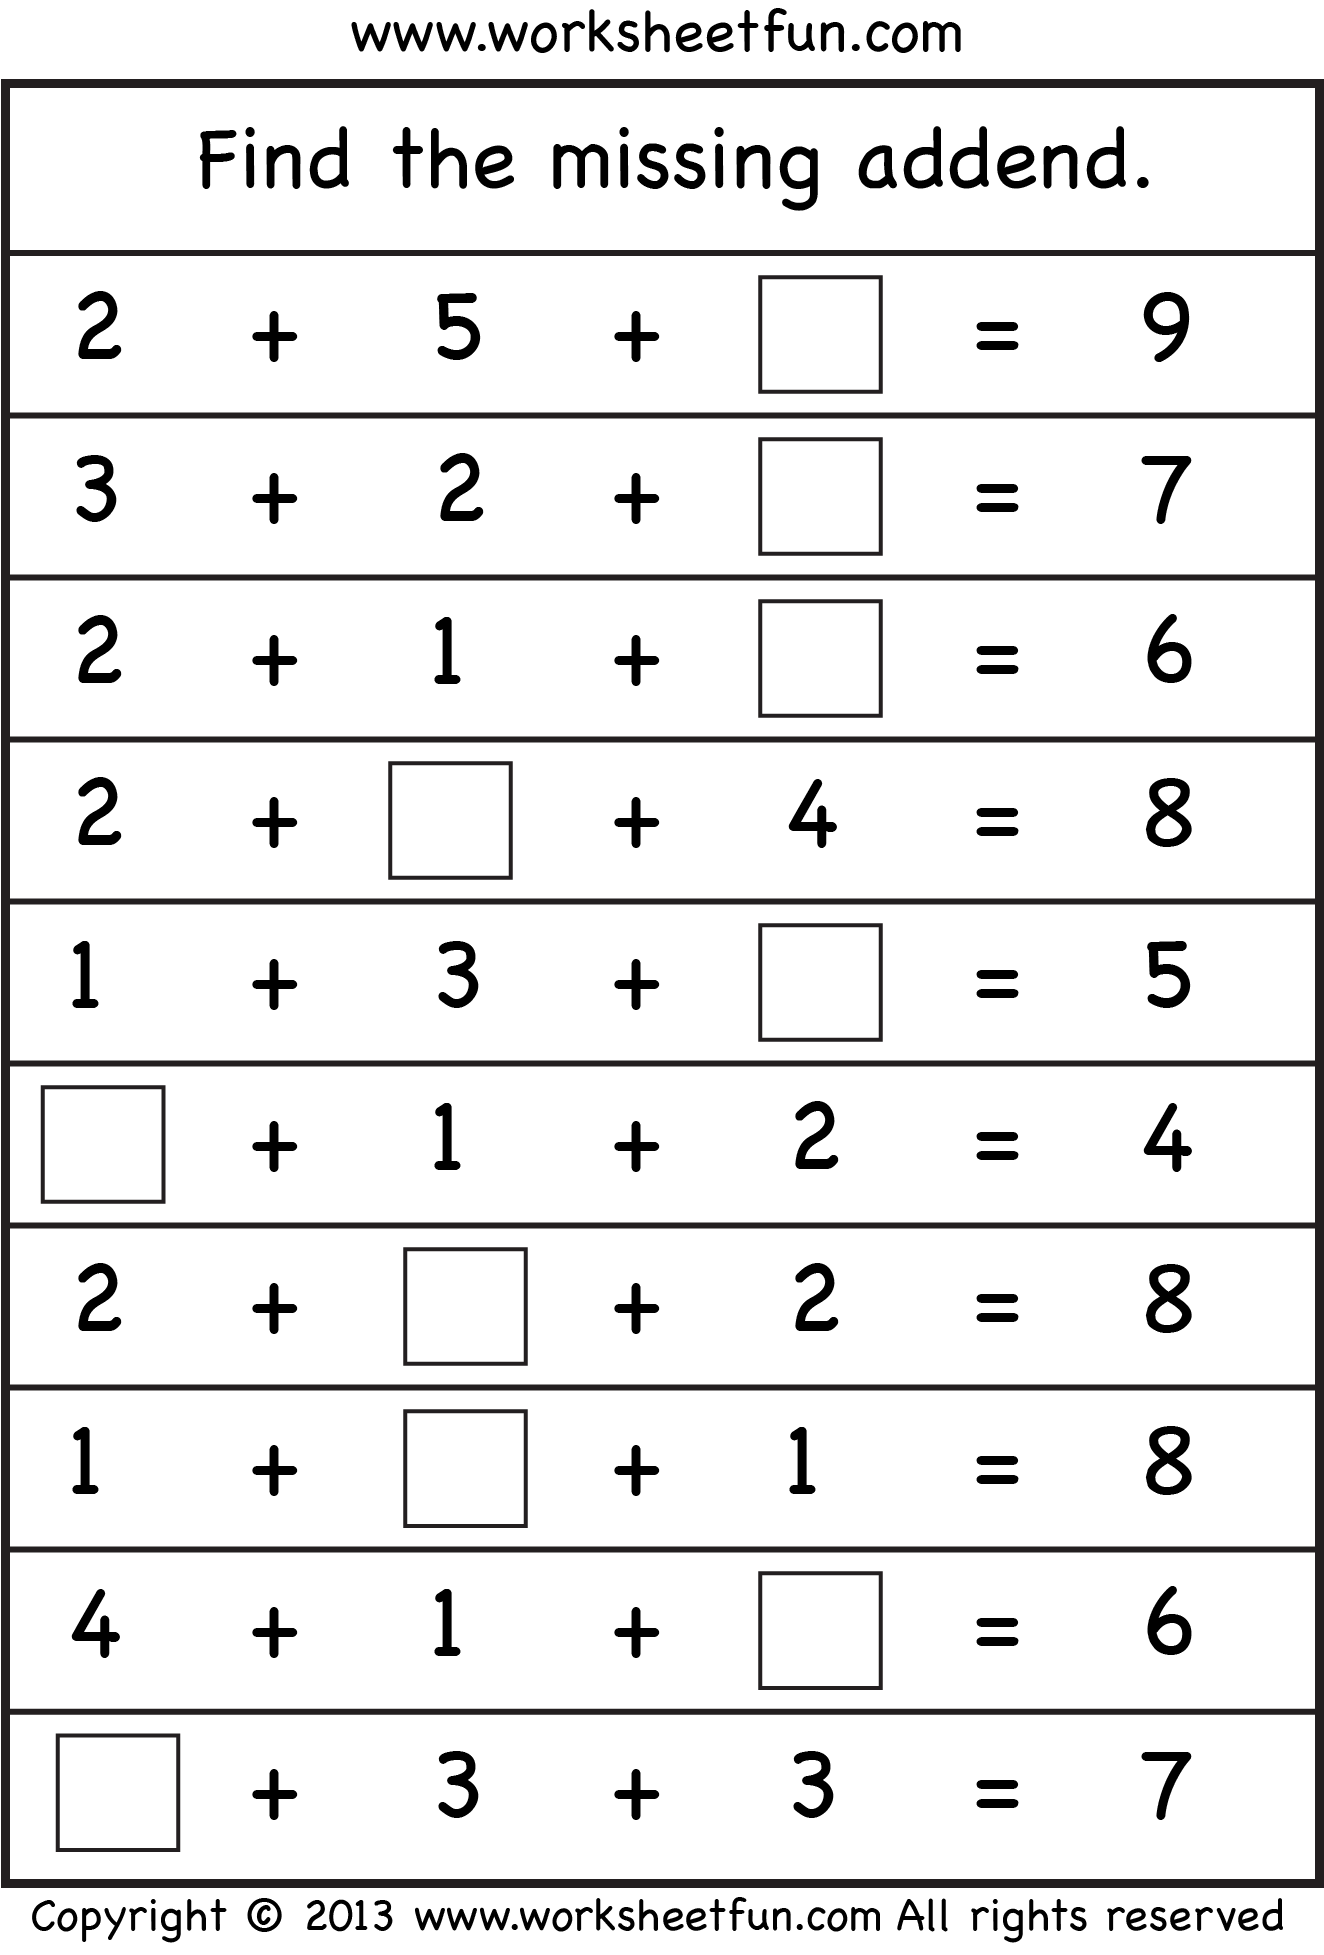 Pin on School - Math